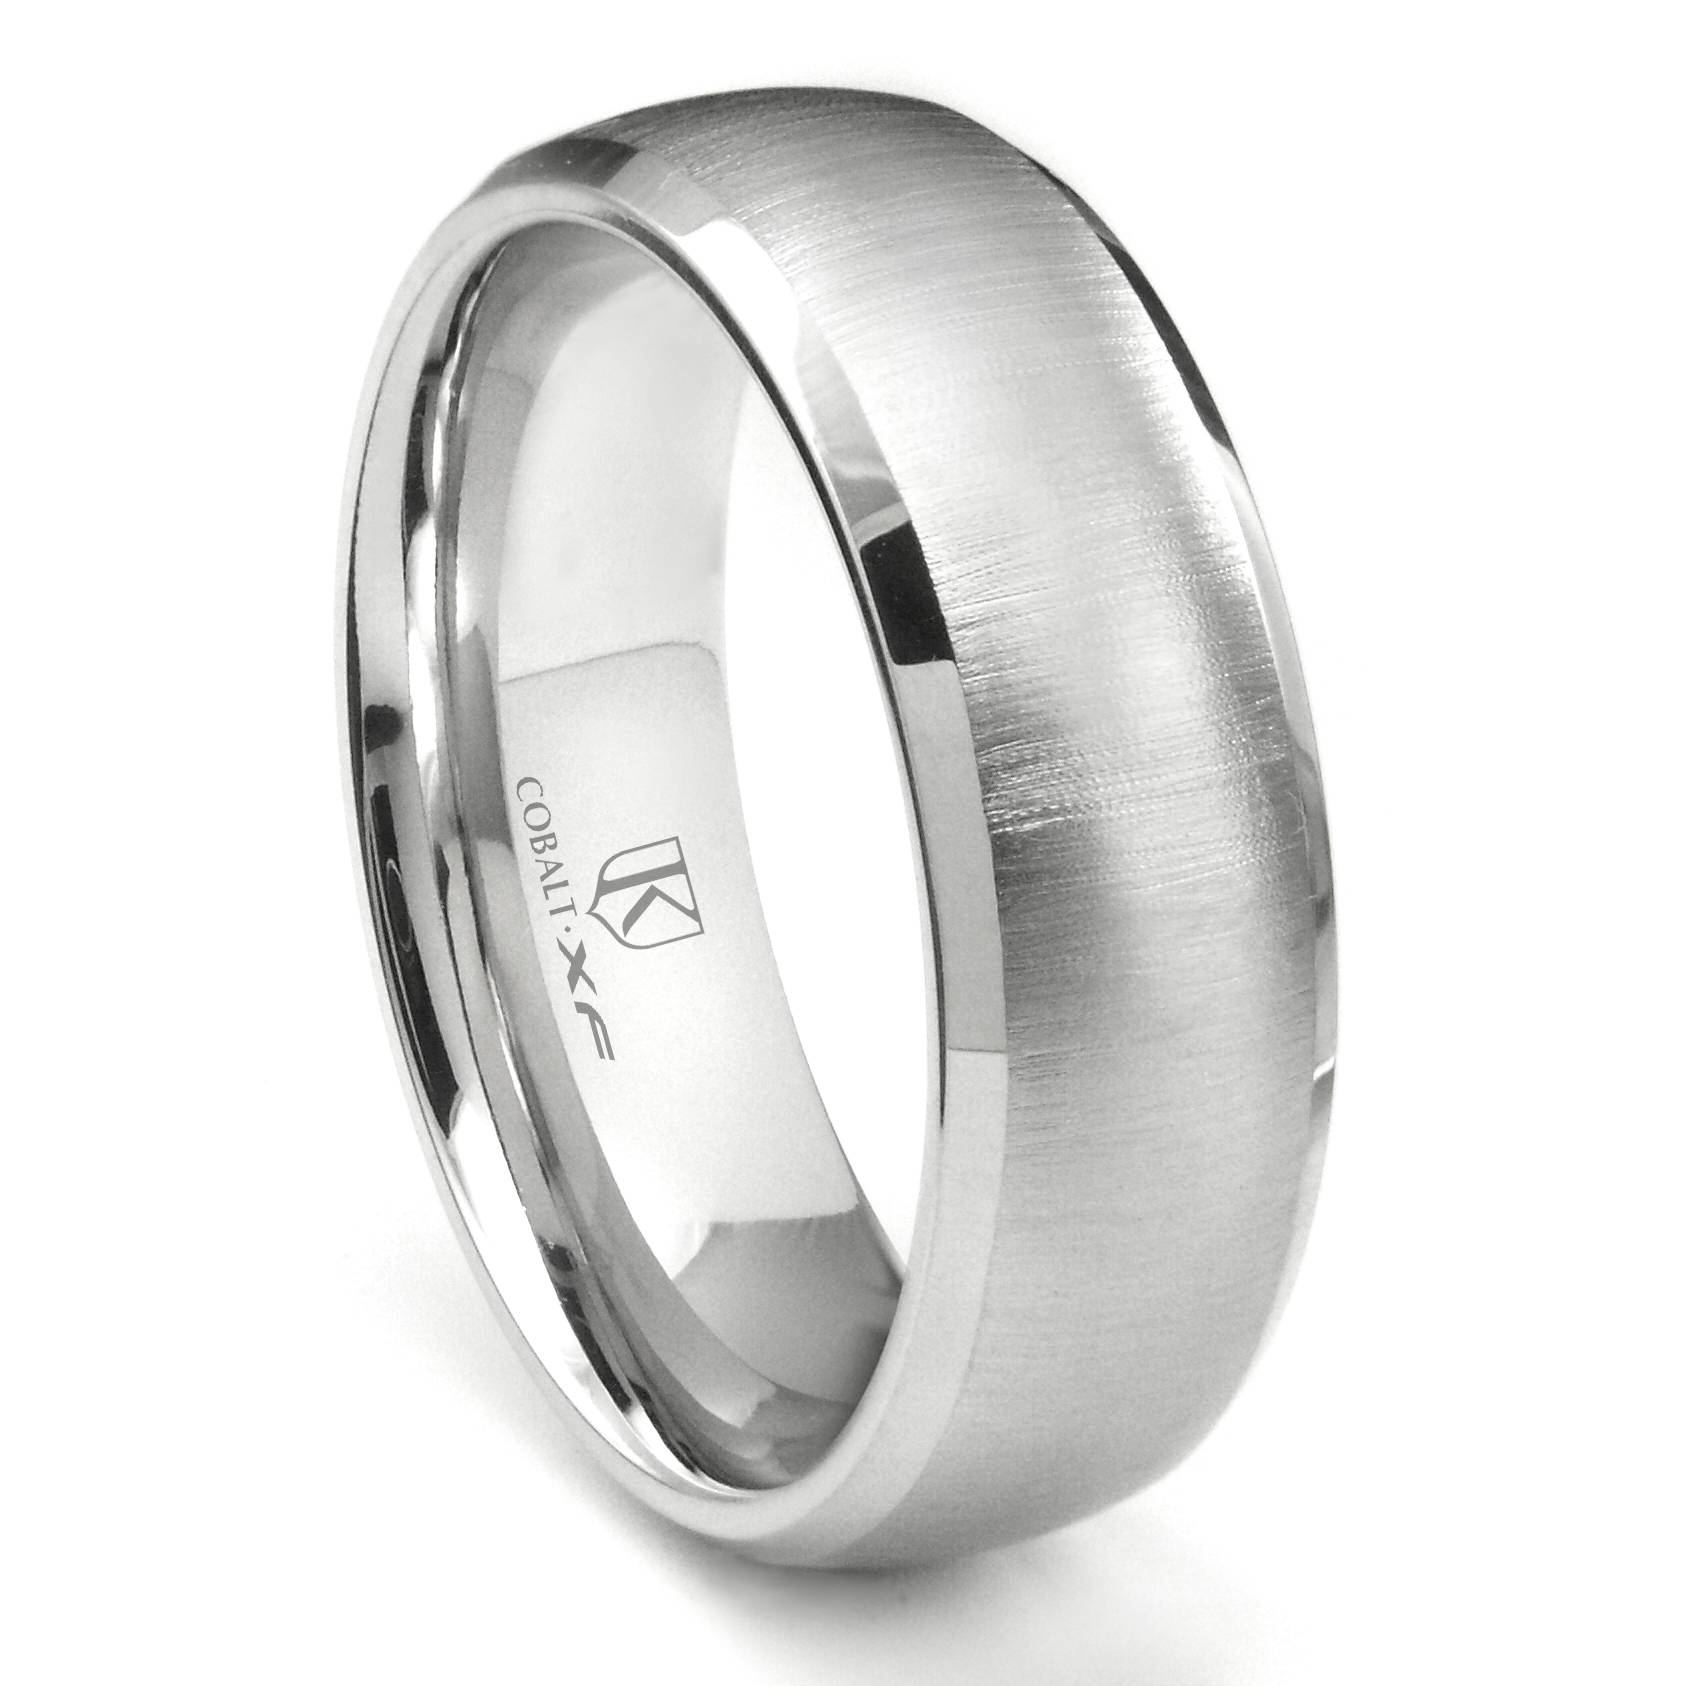 Cobalt Xf Chrome 8Mm Satin Finish Dome Wedding Band Ring W Regarding Cobalt Wedding Rings (View 10 of 15)